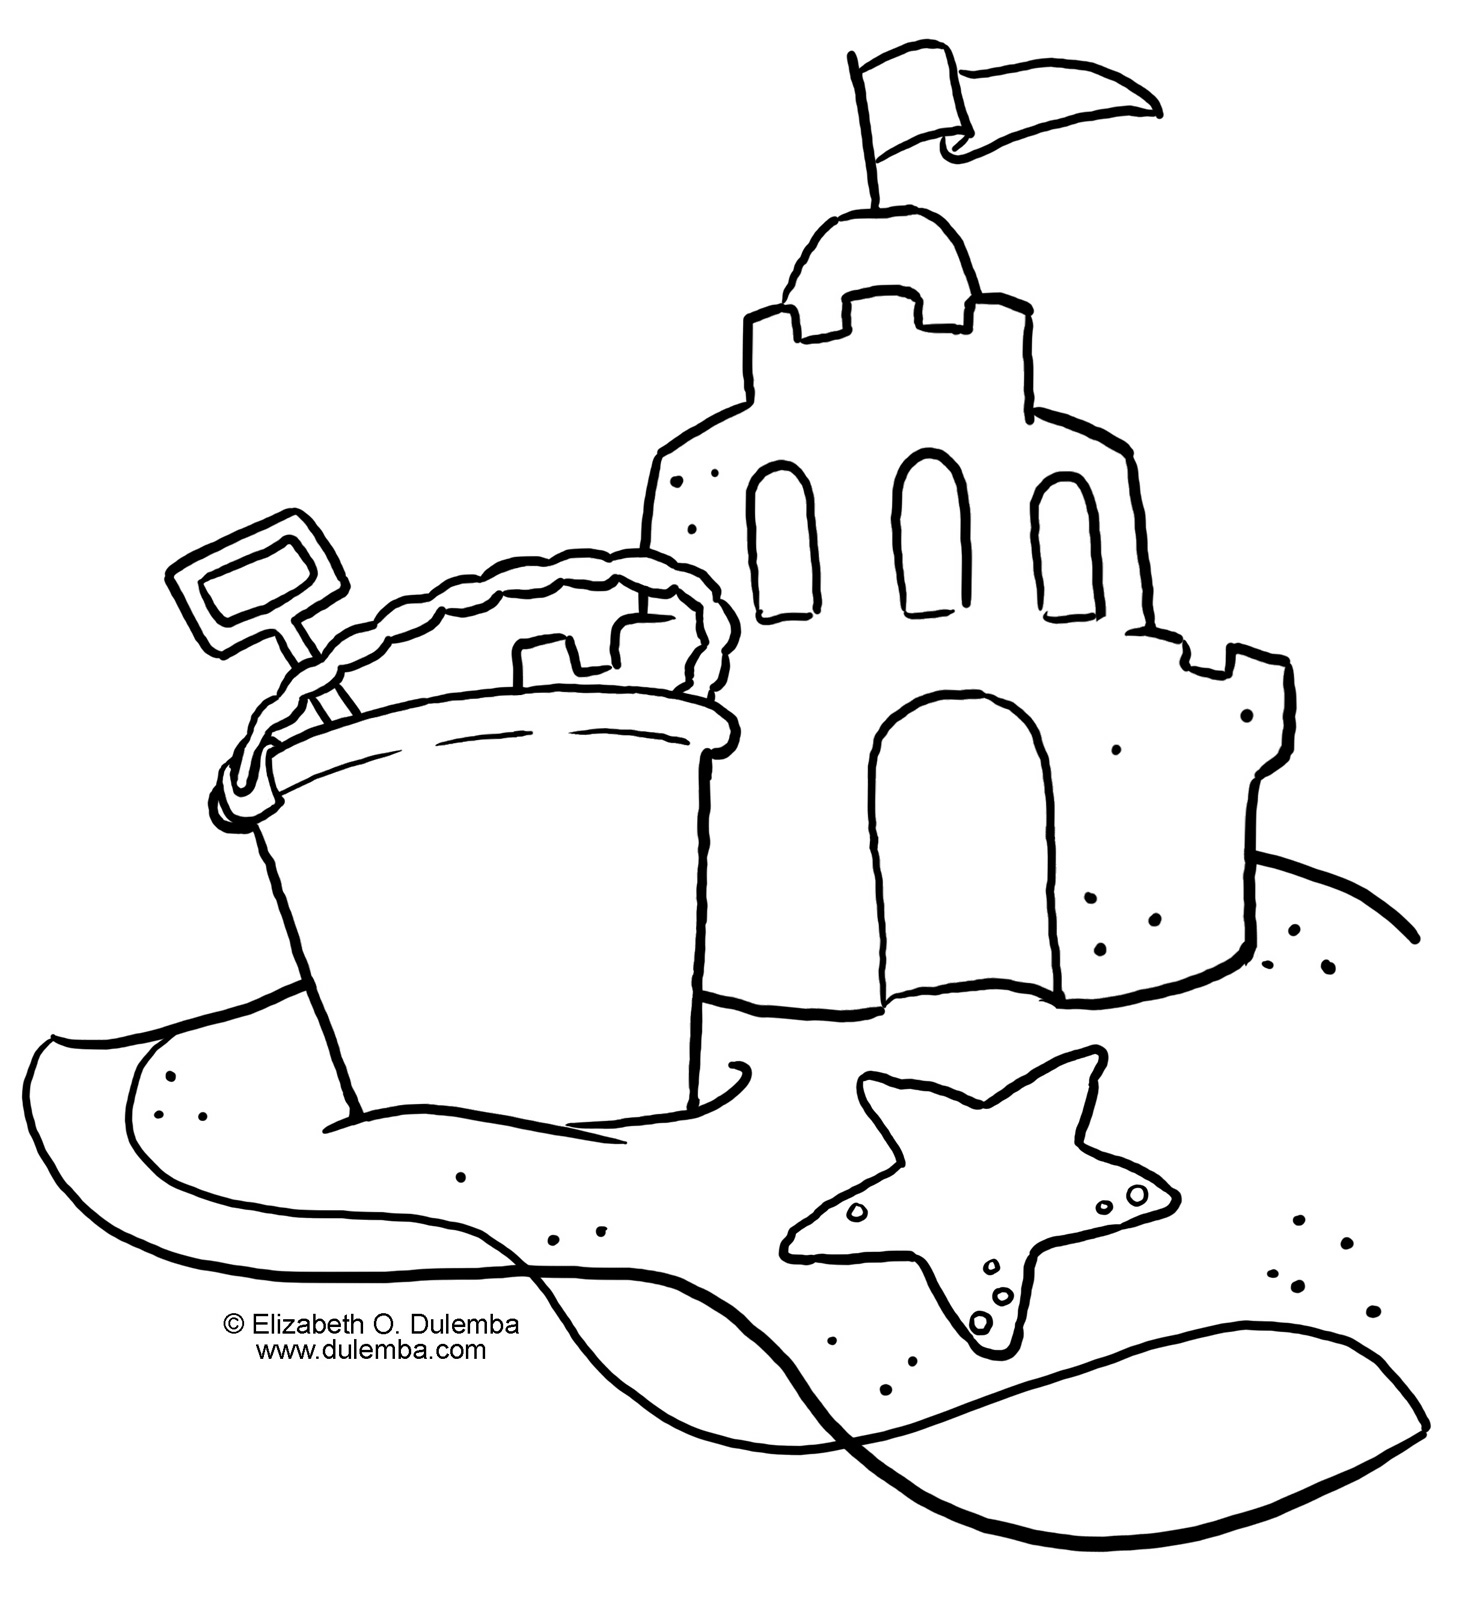 sandcastle coloring page sandcastle coloring pages coloring pages to download and sandcastle page coloring